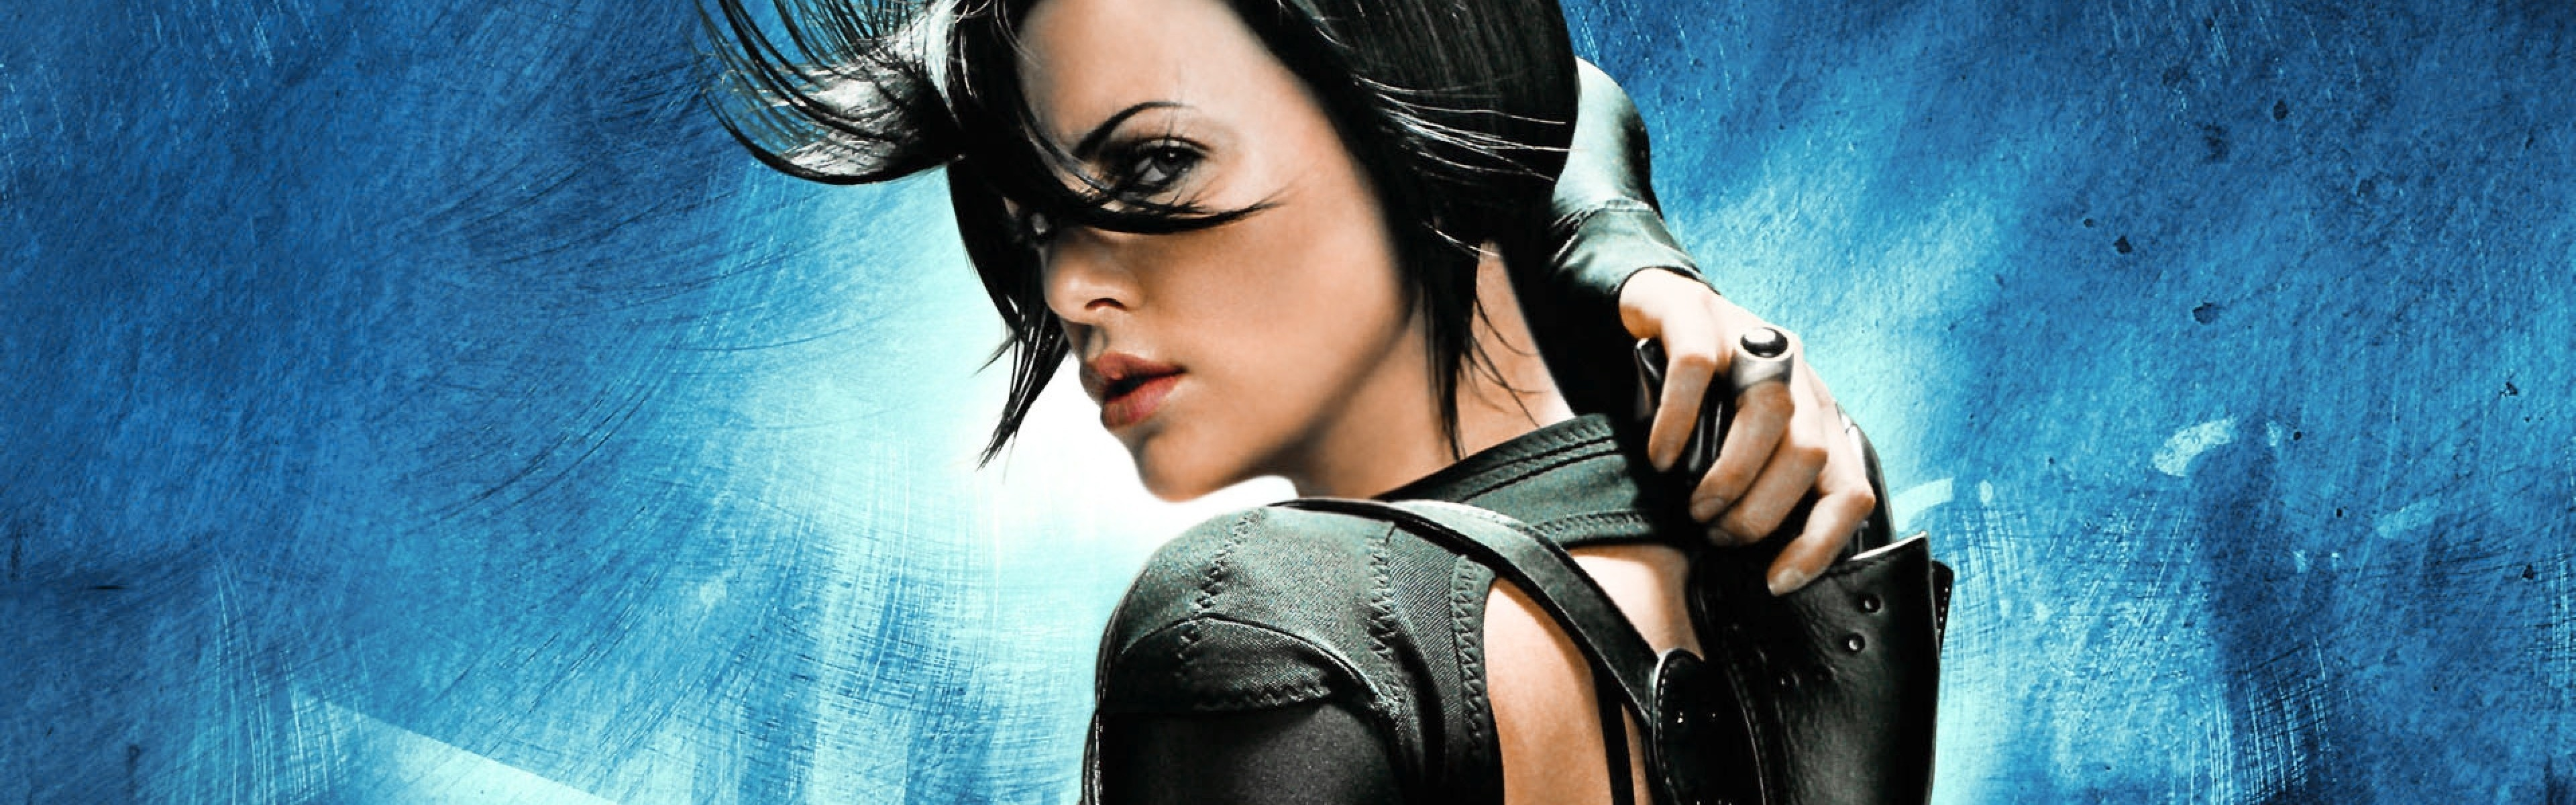 Res: 3840x1200, Aeon Flux Wallpapers 12 - 3840 X 1200